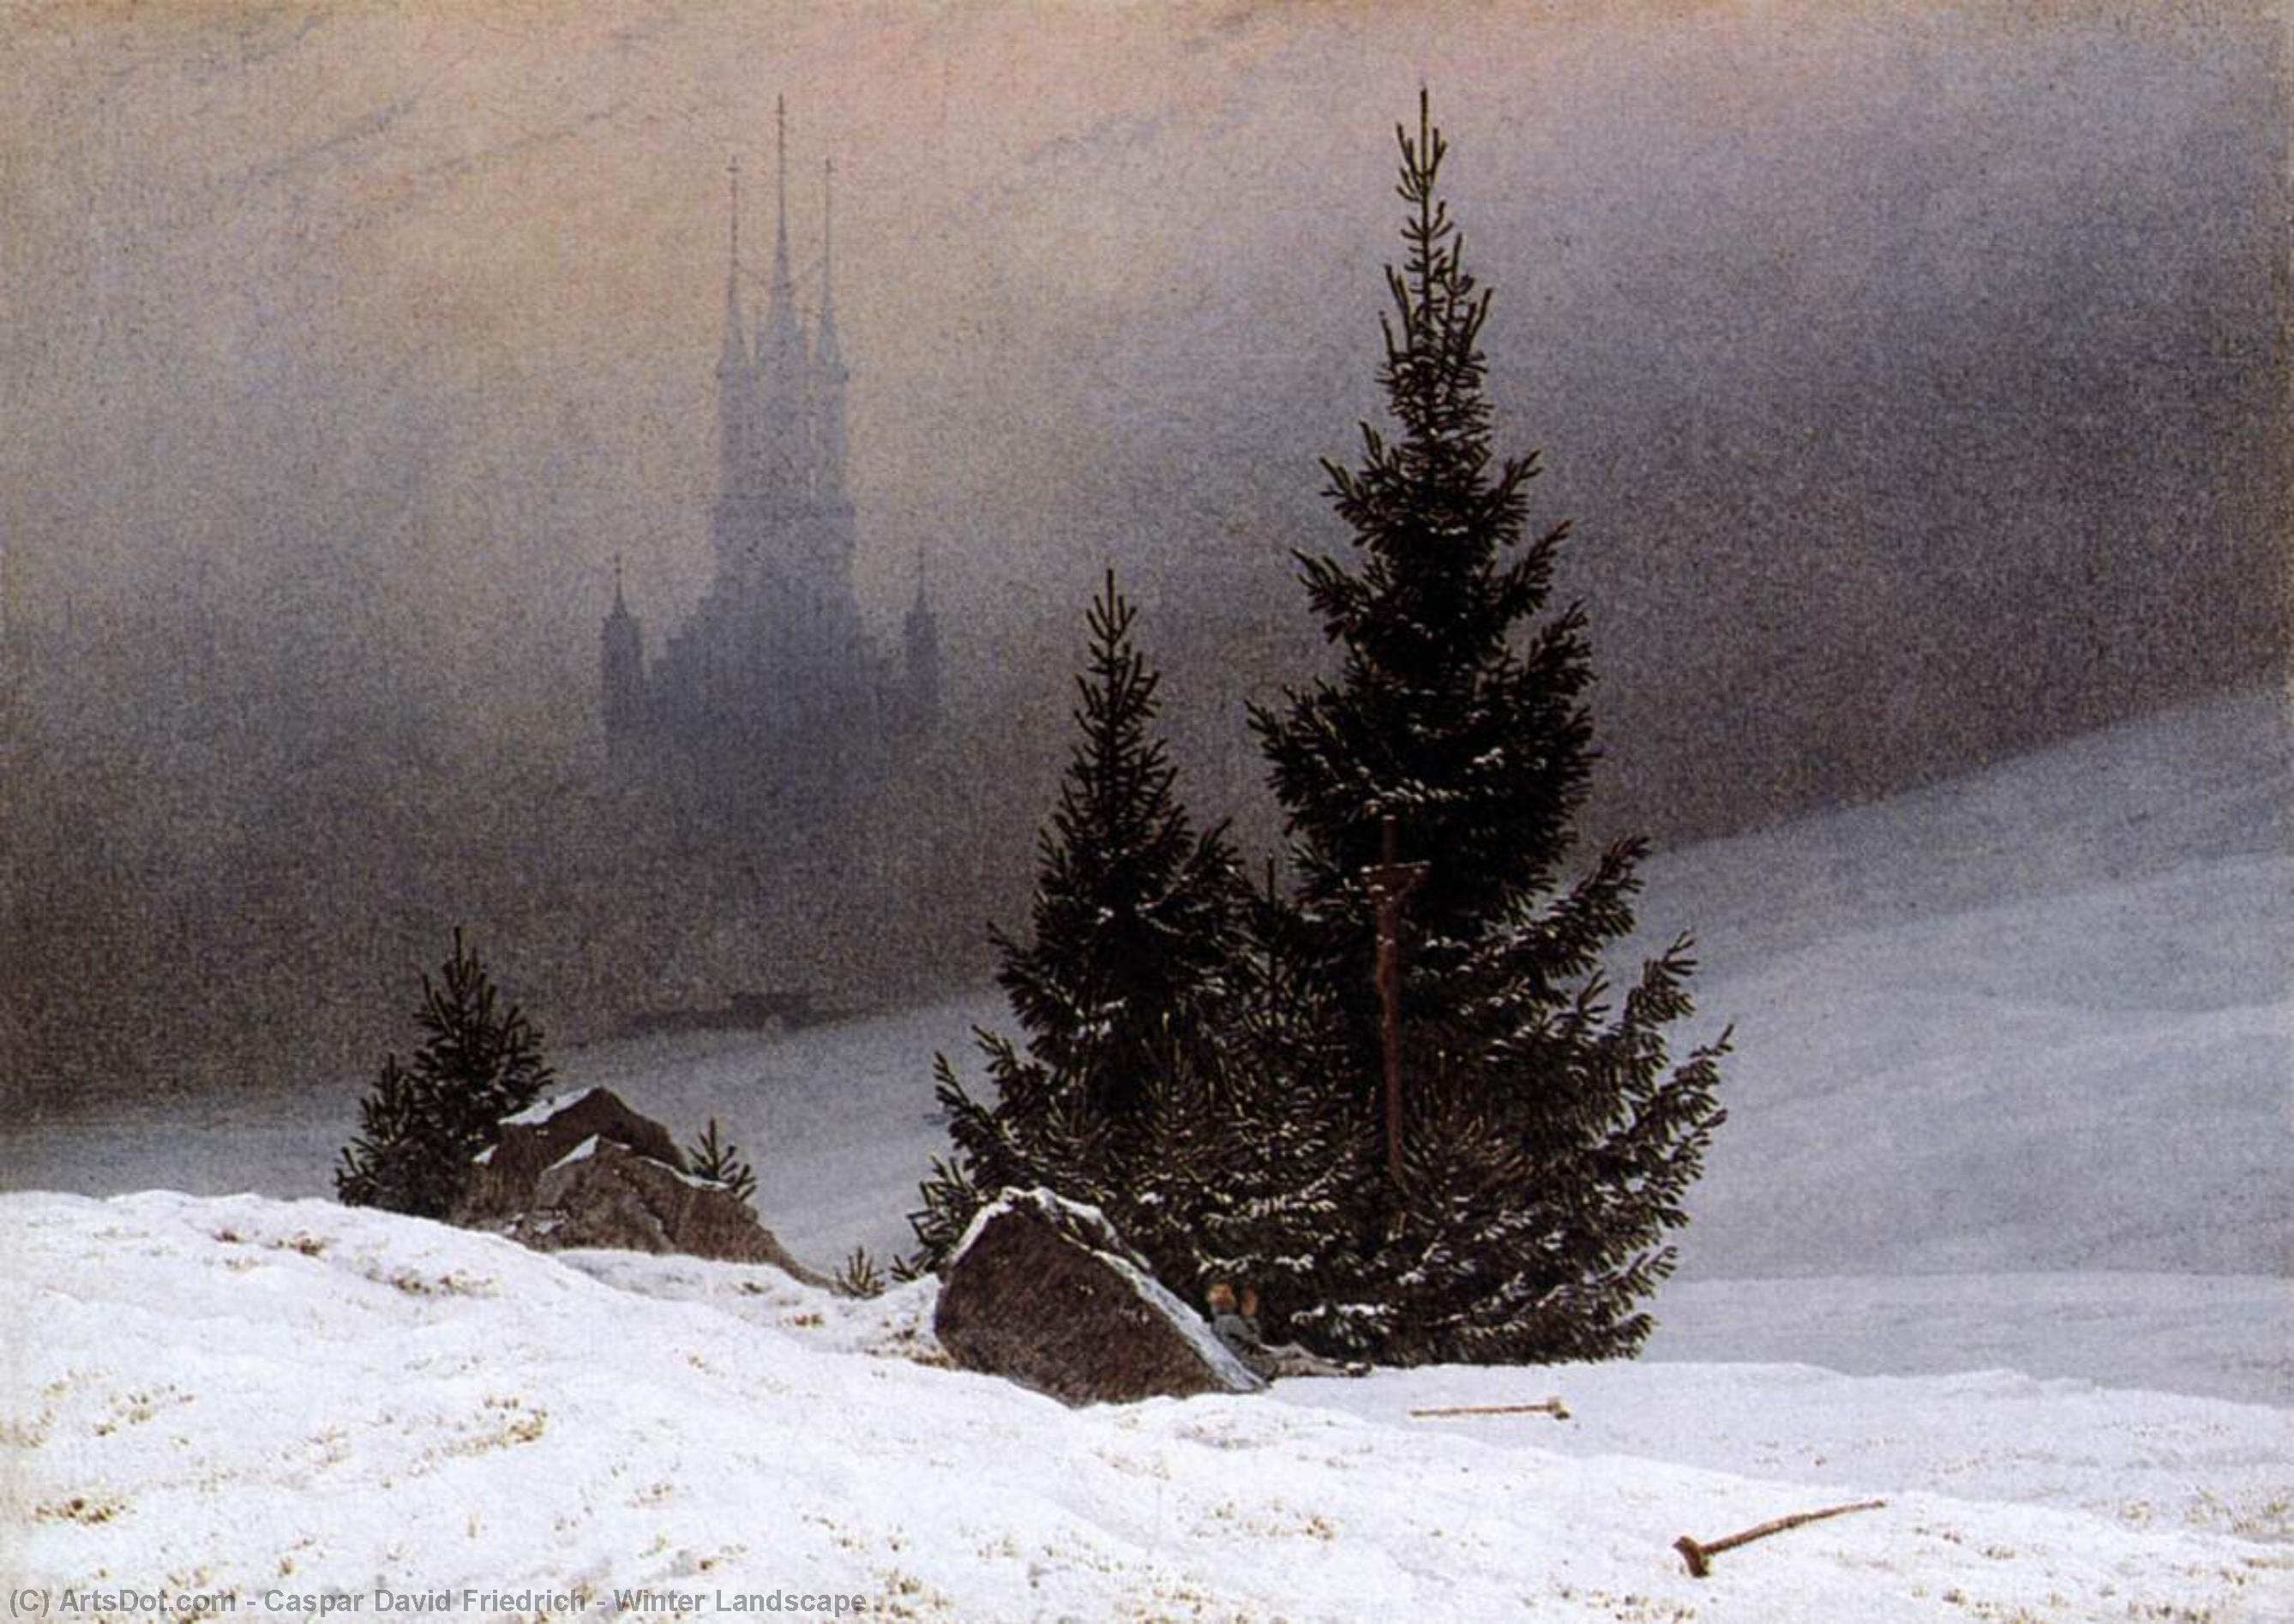 paysage d`hiver, 1811 de Caspar David Friedrich (1774-1840, Germany) | Reproductions D'art Caspar David Friedrich | ArtsDot.com